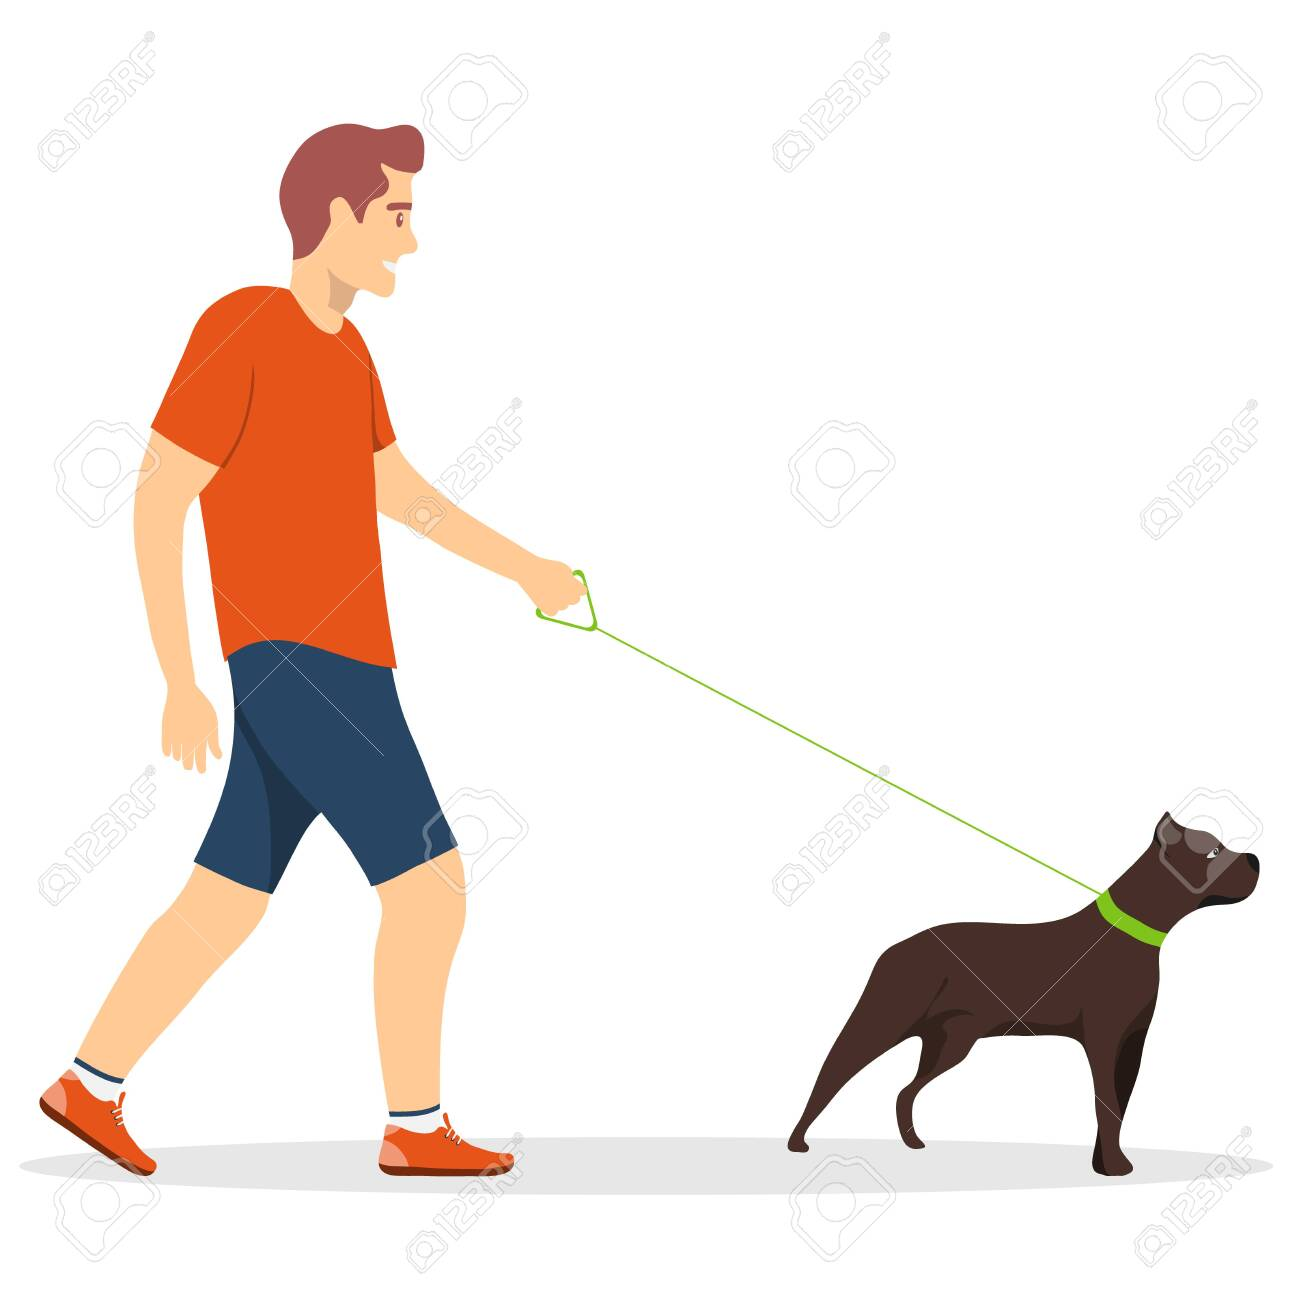 Walk the dogs. A man walking a dog on a leash isolated on a white background. Vector illustration. Vector. - 147874414